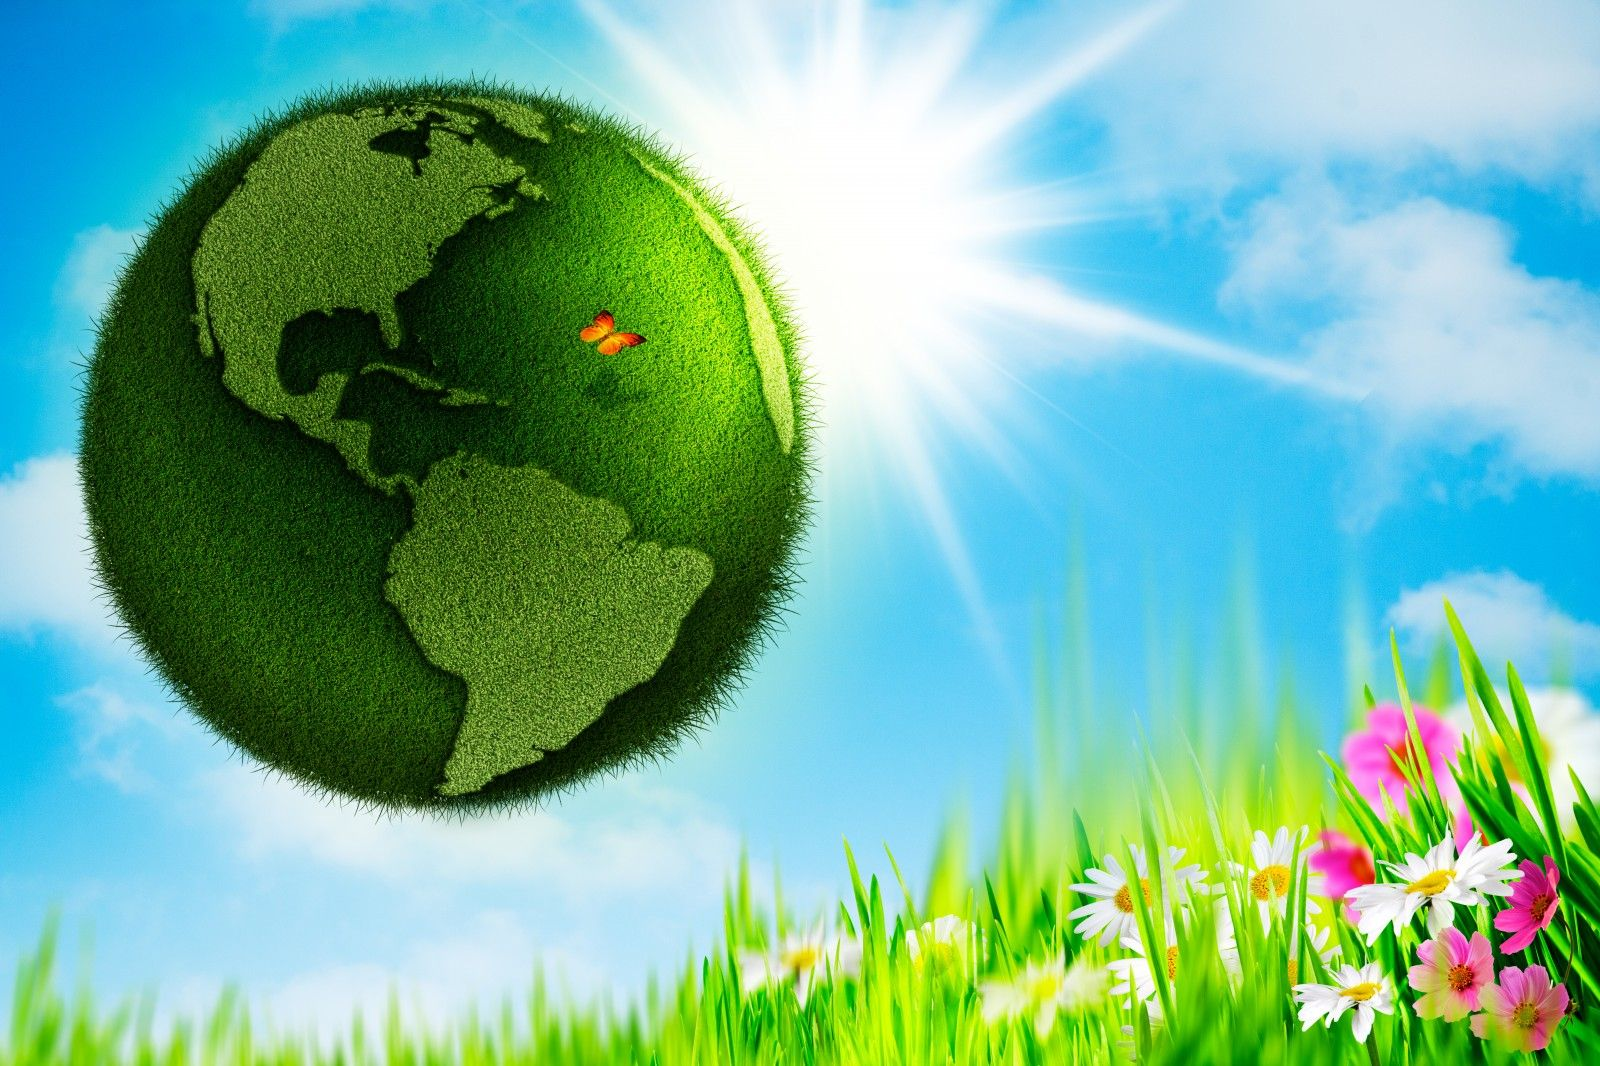 happy earth day | happy earth day 2014 3d images, hd wallpapers